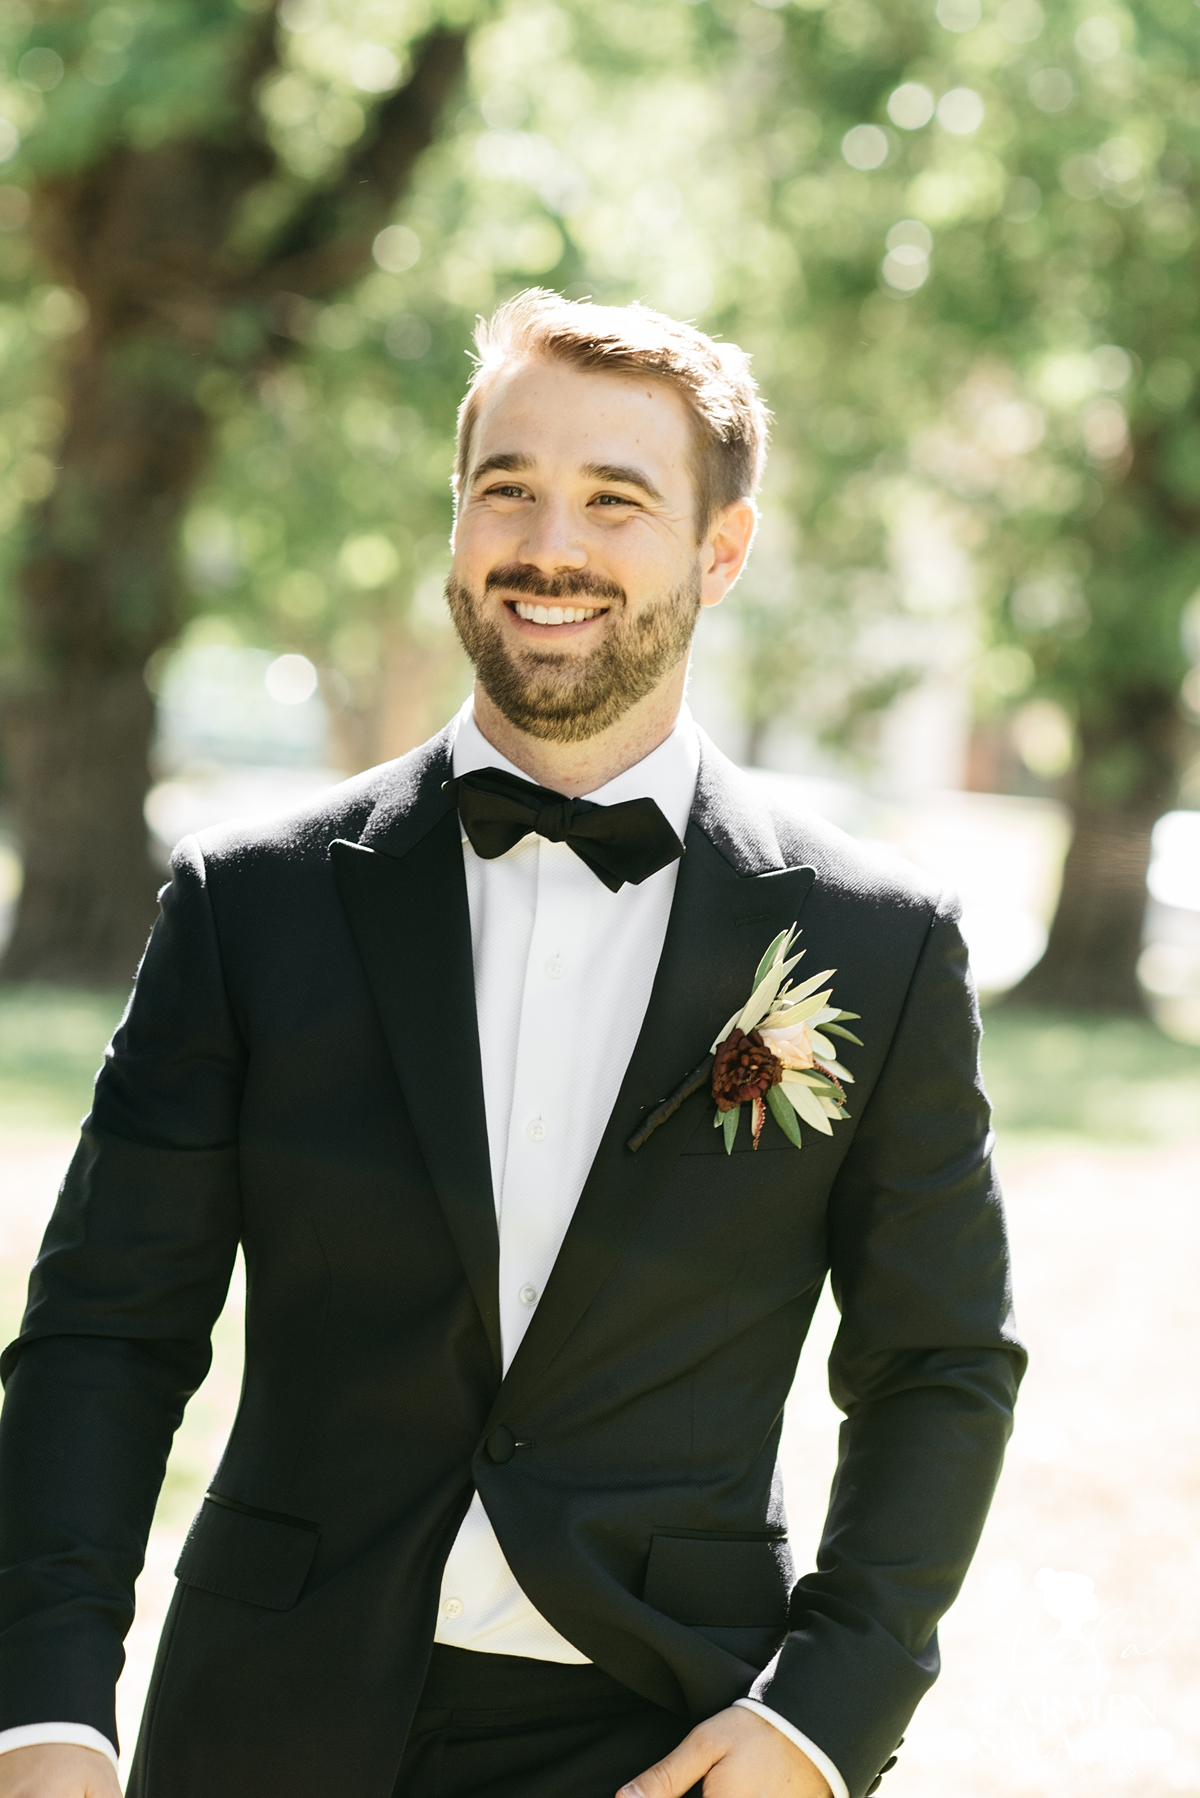 McKinley Park wedding portrait of smiling groom in suit by Sacramento wedding photographer Carmen Salazar